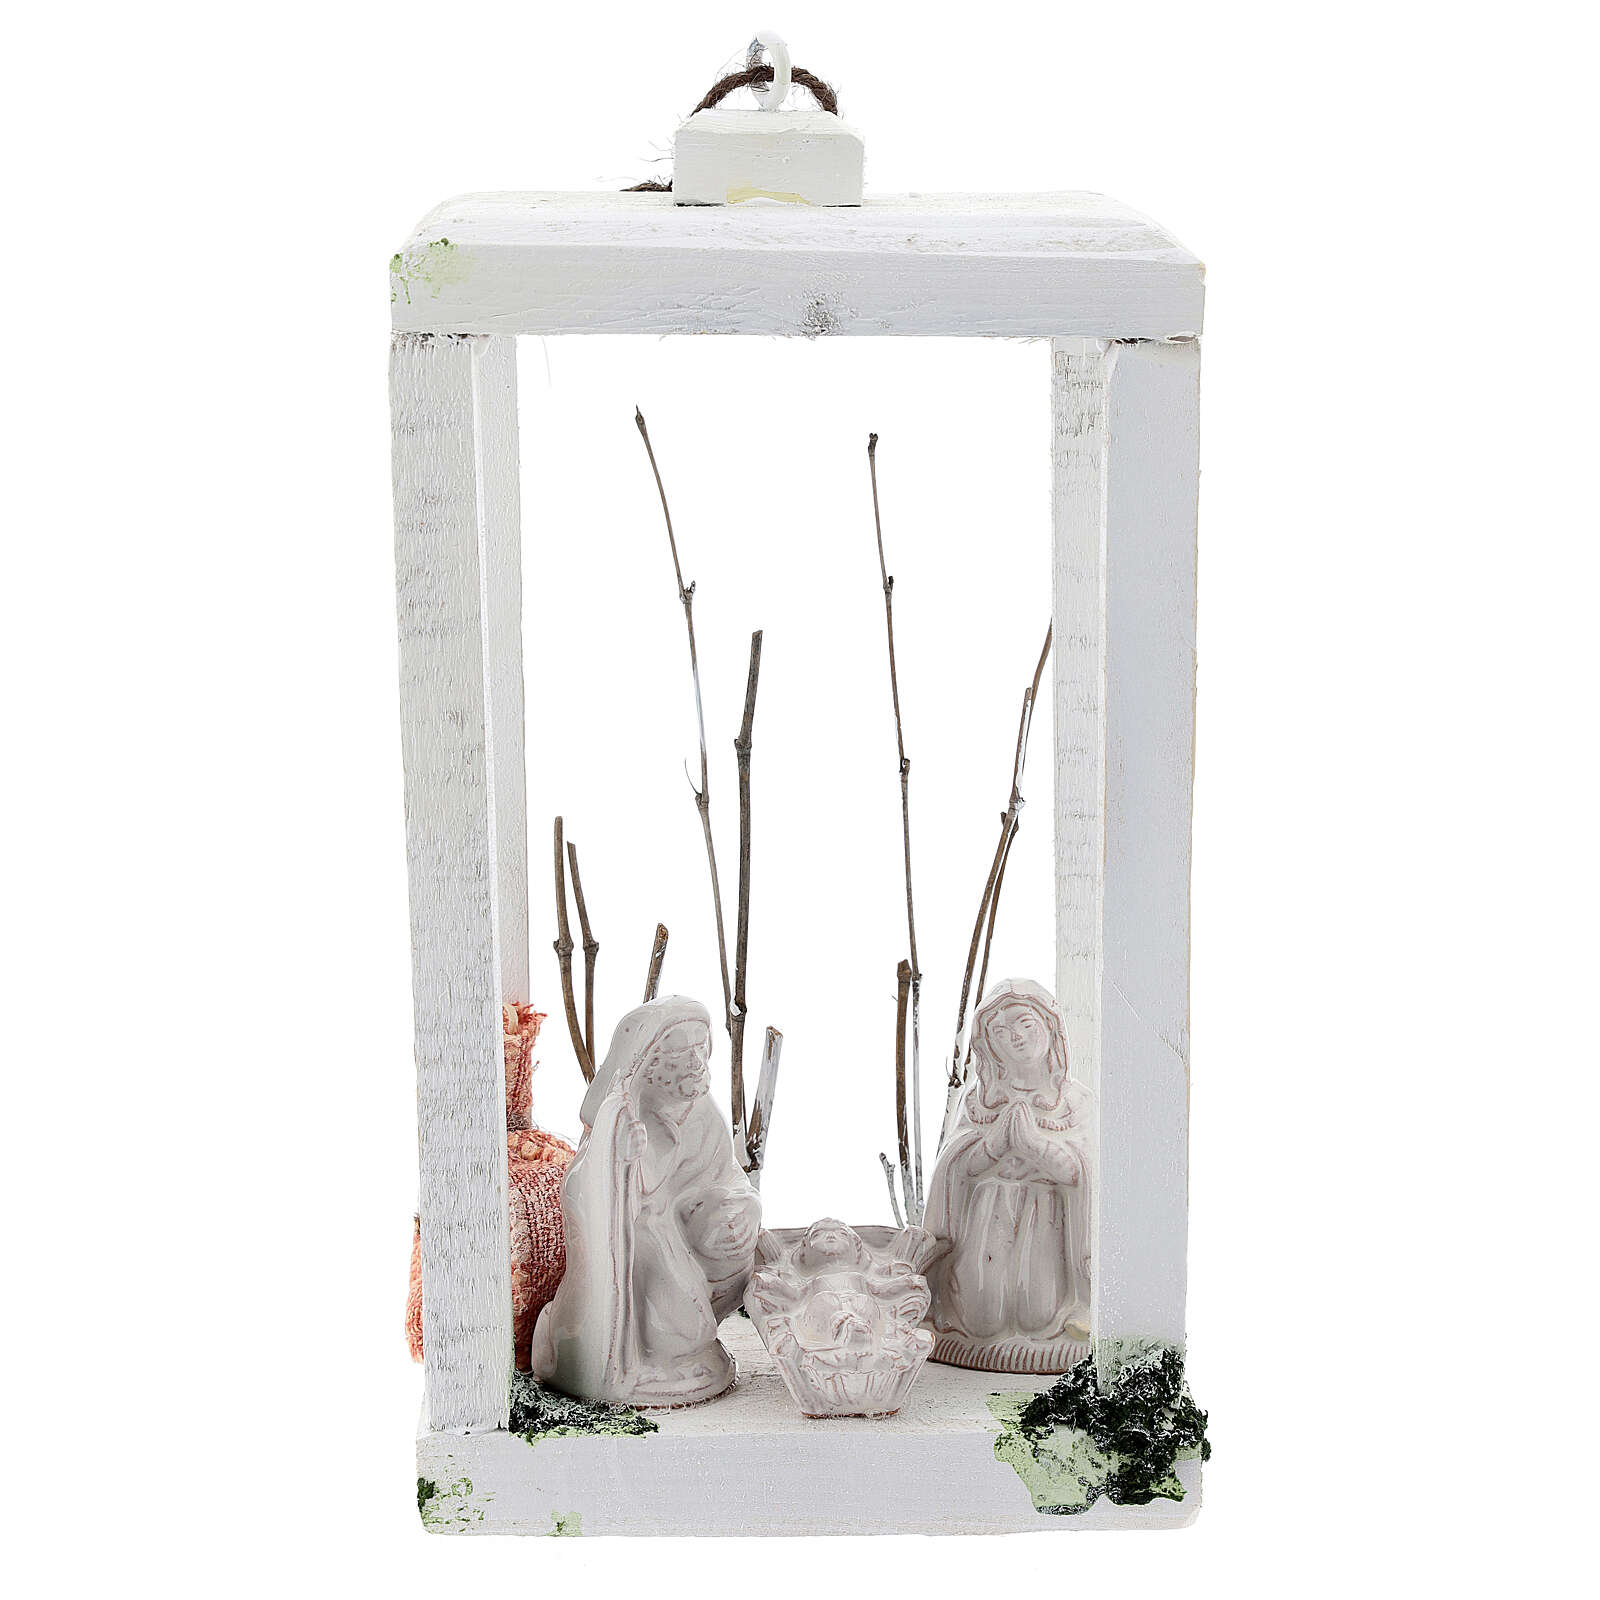 Wooden lantern with Nativity 8 cm in white Deruta terracotta 23x15x10 4